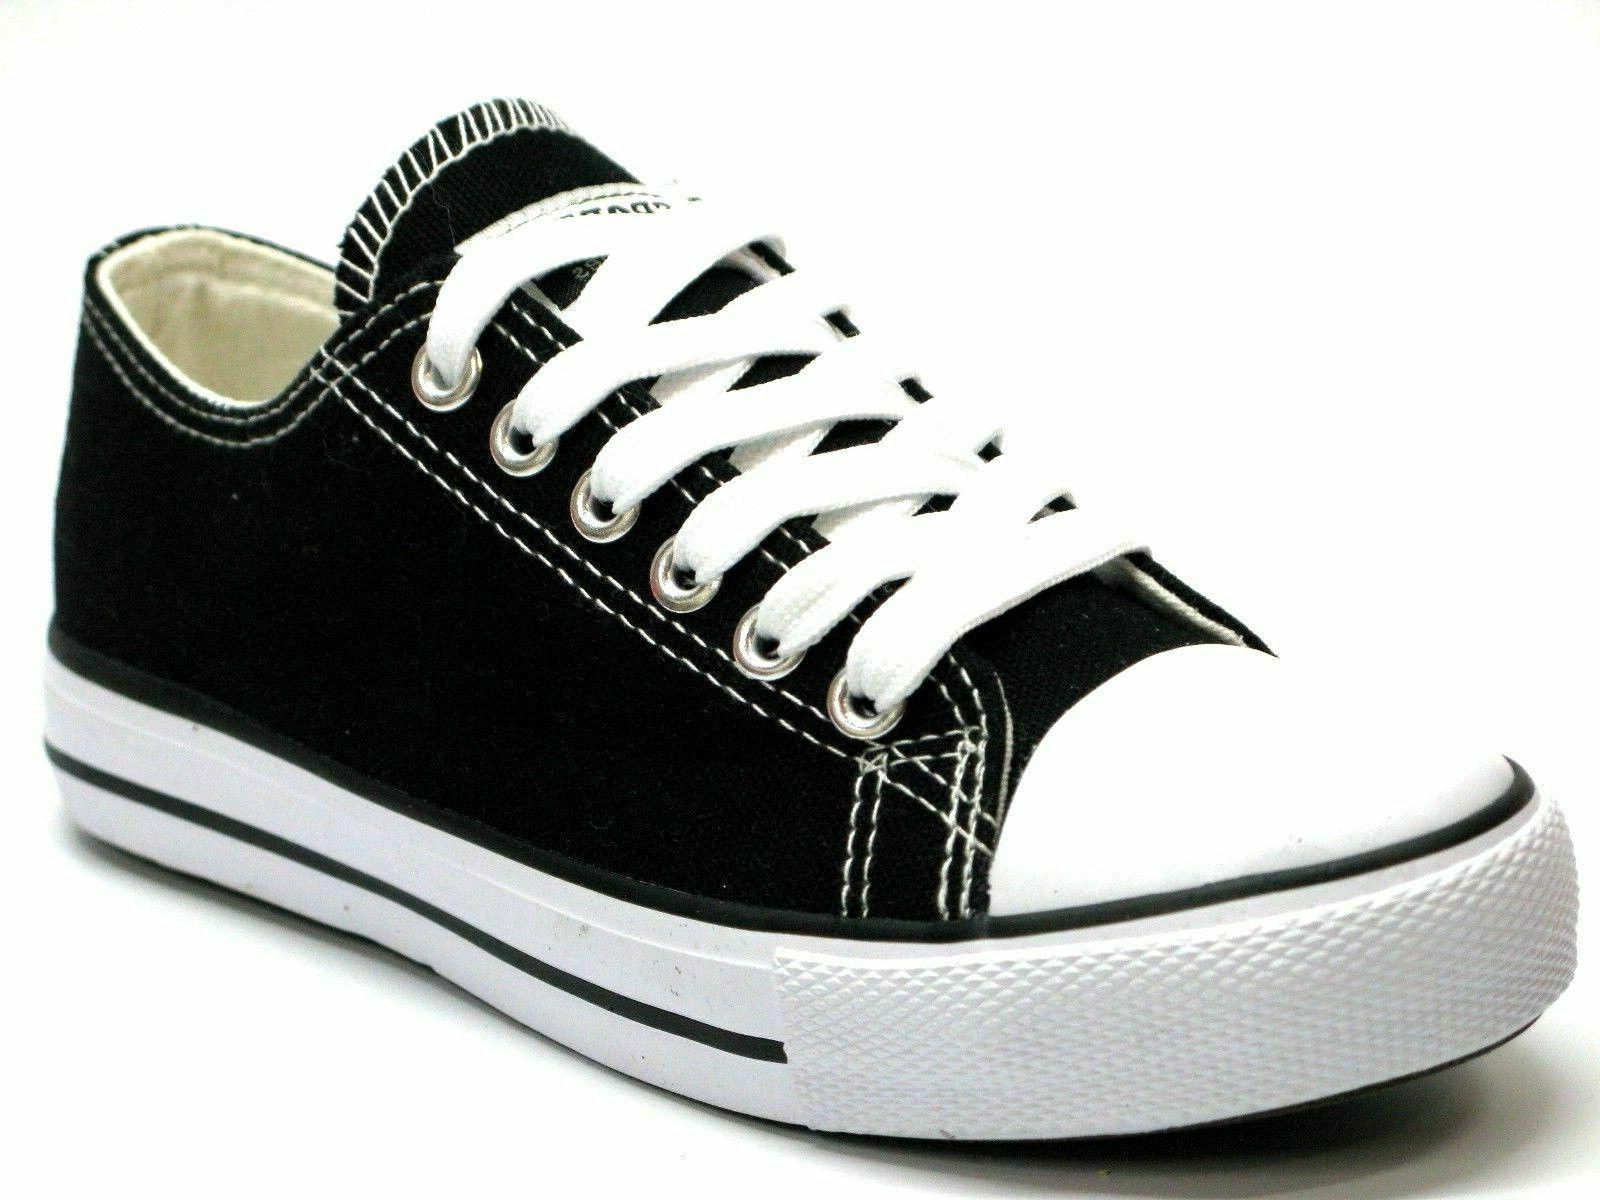 Up Canvas Shoes Athletic Sneakers Fashion Size 7-12